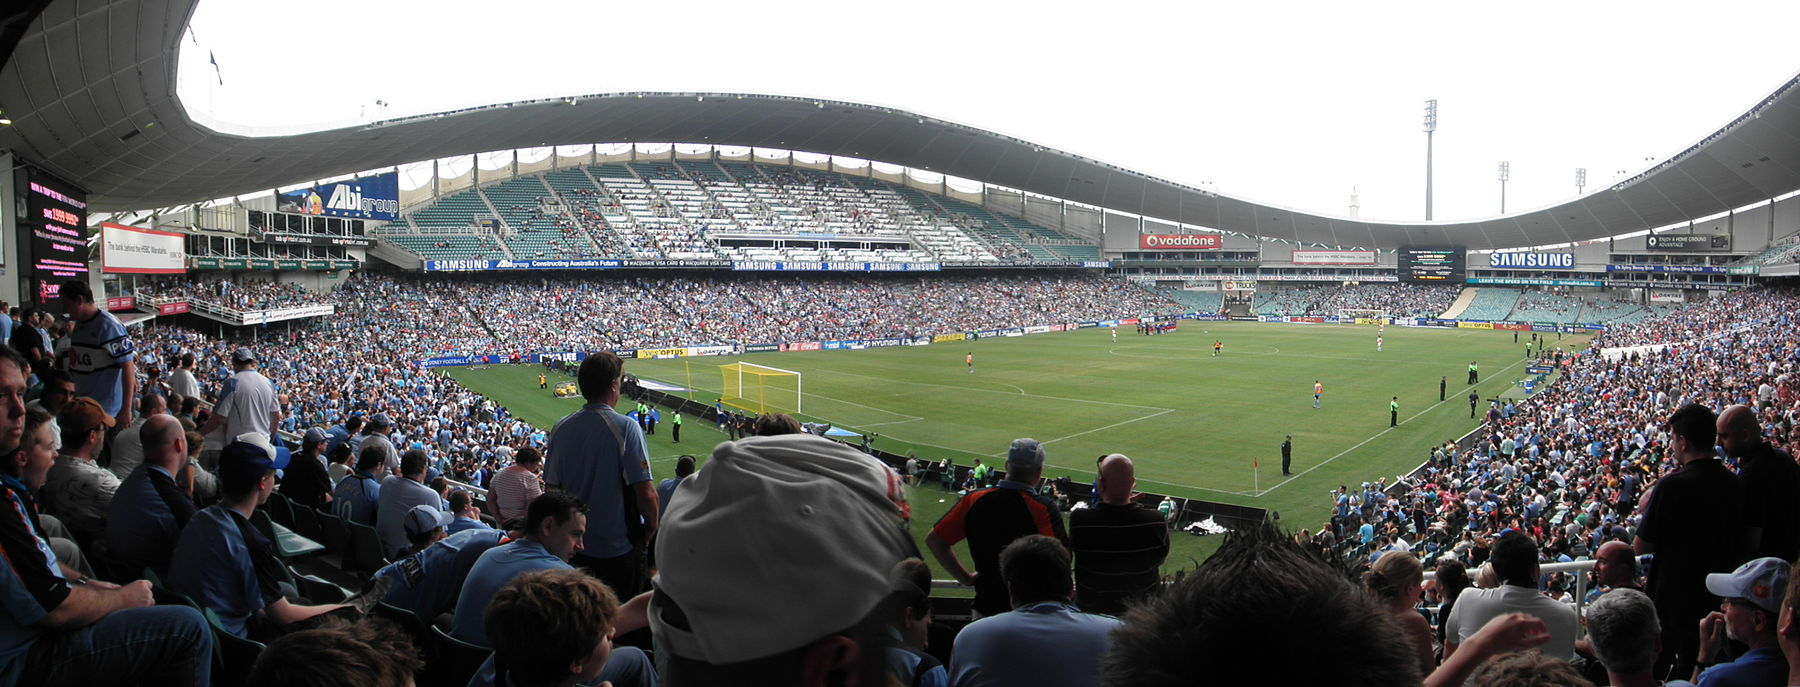 Allianz Stadium prior to Sydney FC defeating Melbourne Victory 2–0 to win the 2009–10 Hyundai A-League Premiership in front of 25,407 fans Pre-Game Sydney FC 2-0 Melbourne Victory Round 27 14.02.2010.JPG